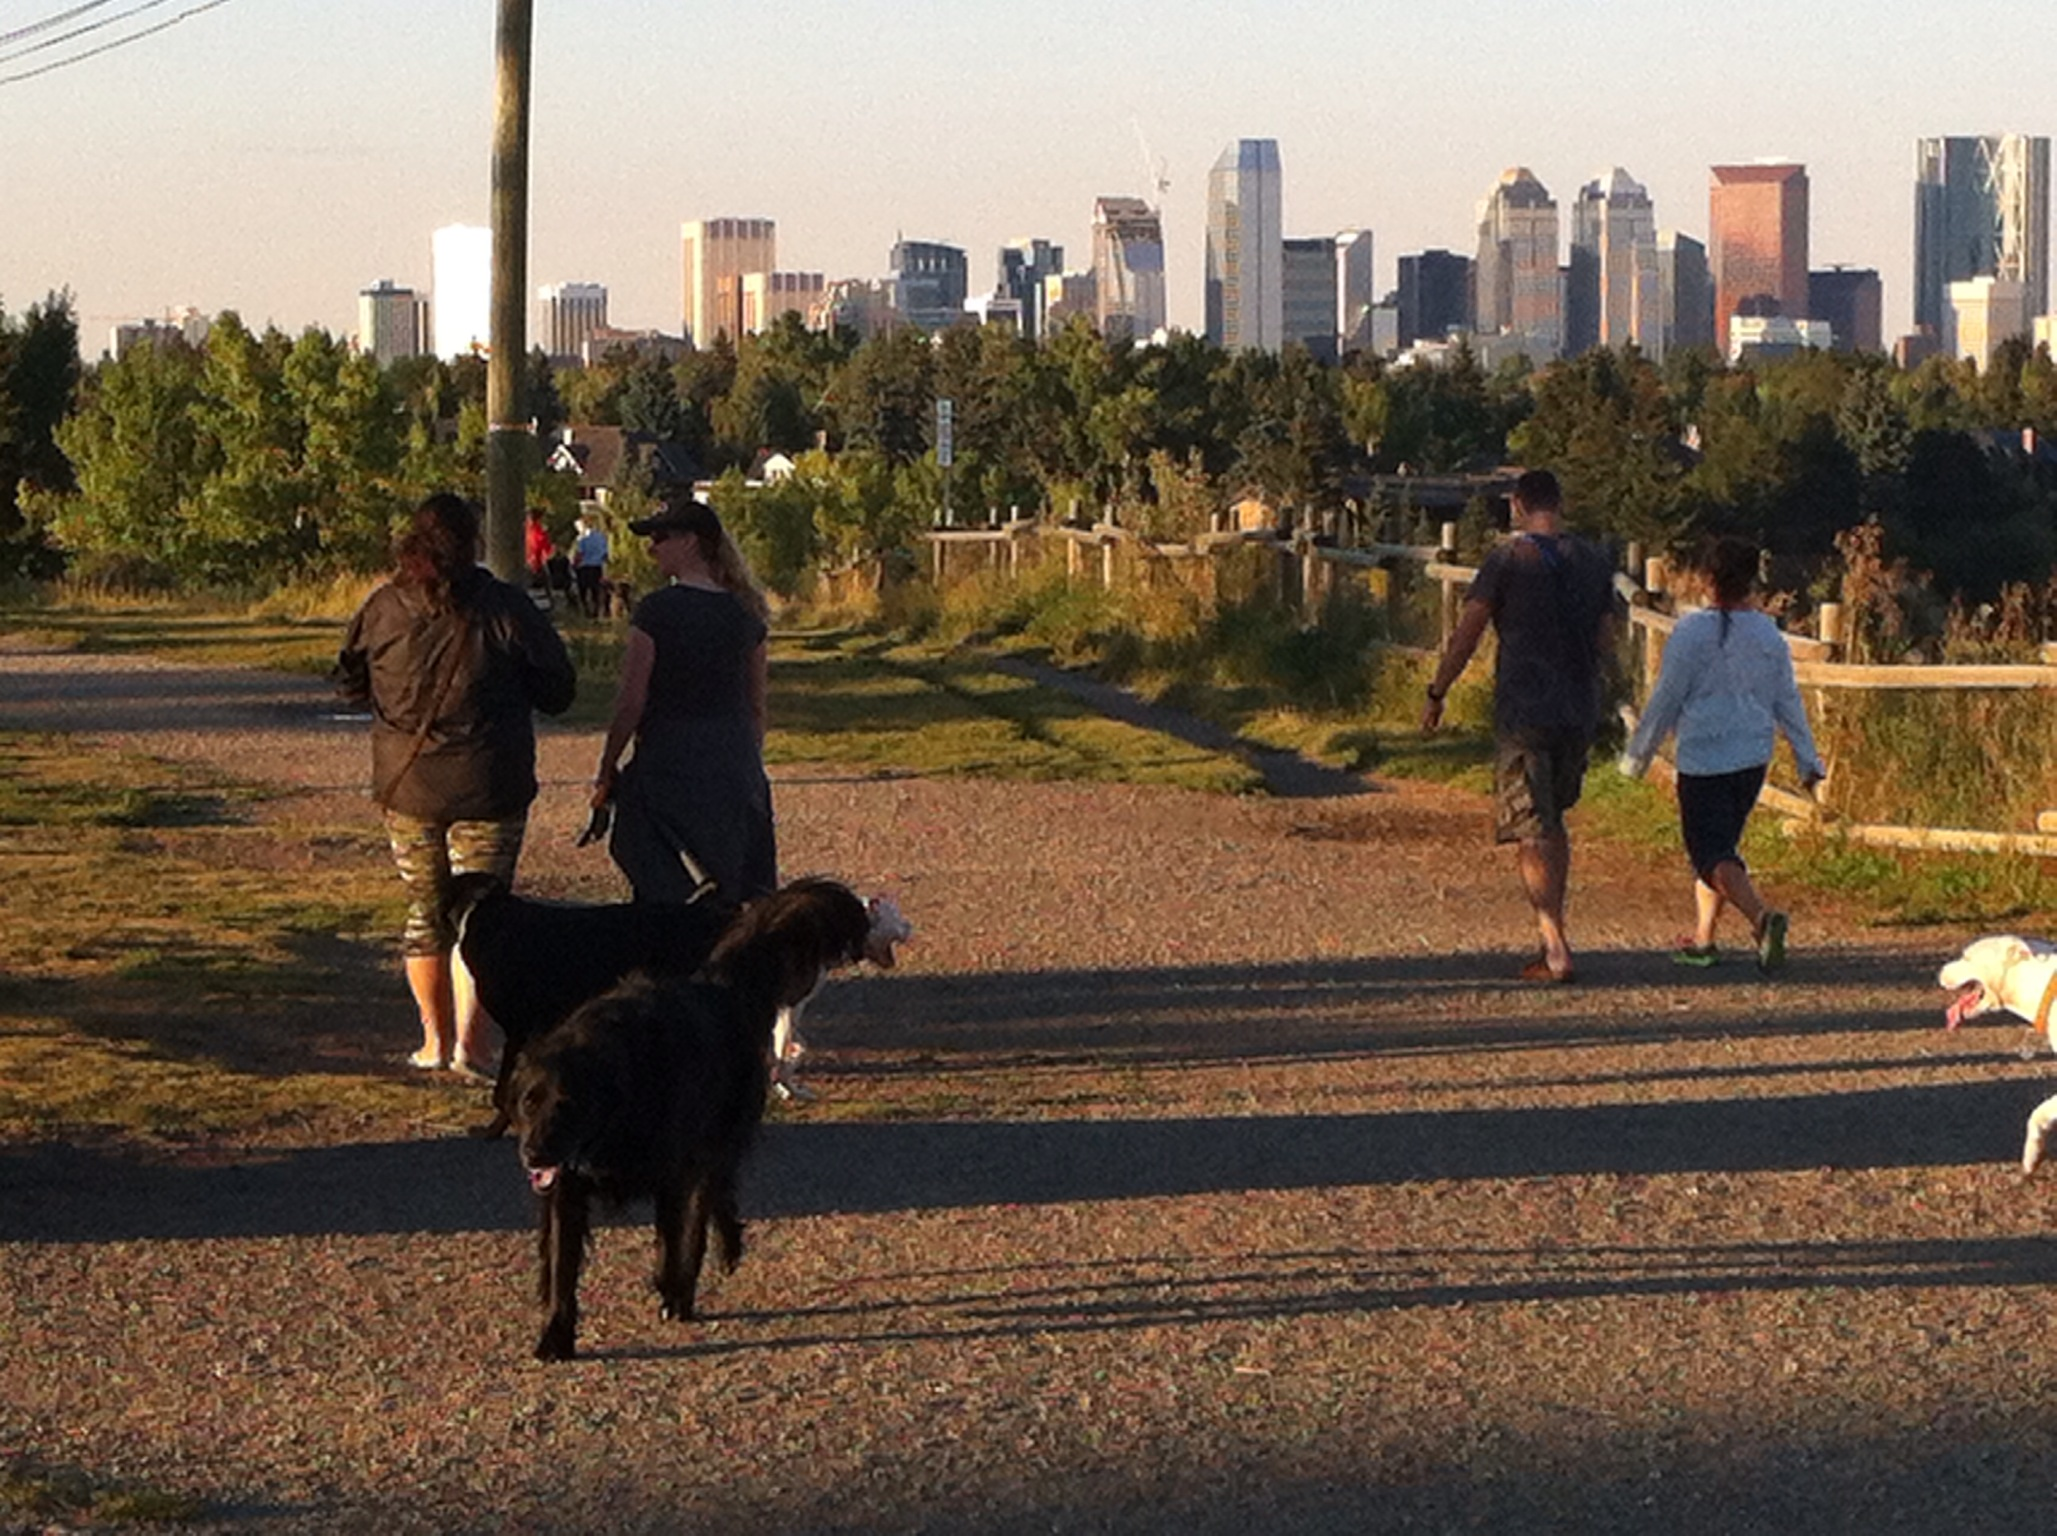 Literally thousands of Calgarians are in dog parks every evening walking their dogs and chatting with fellow citizens.